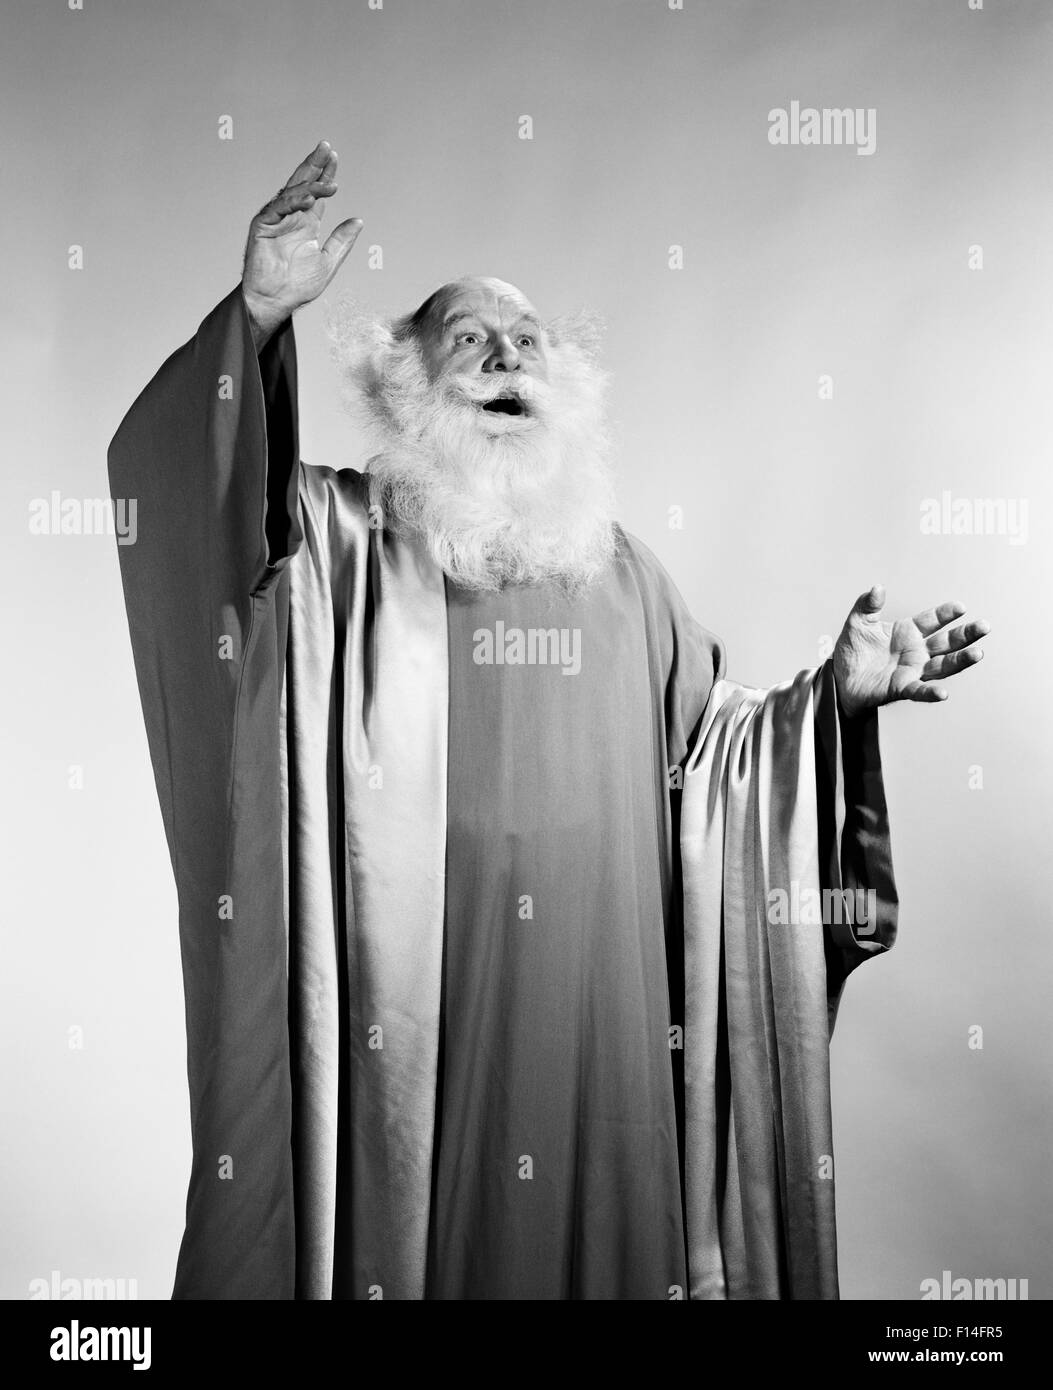 Long White Robes High Resolution Stock Photography And Images Alamy